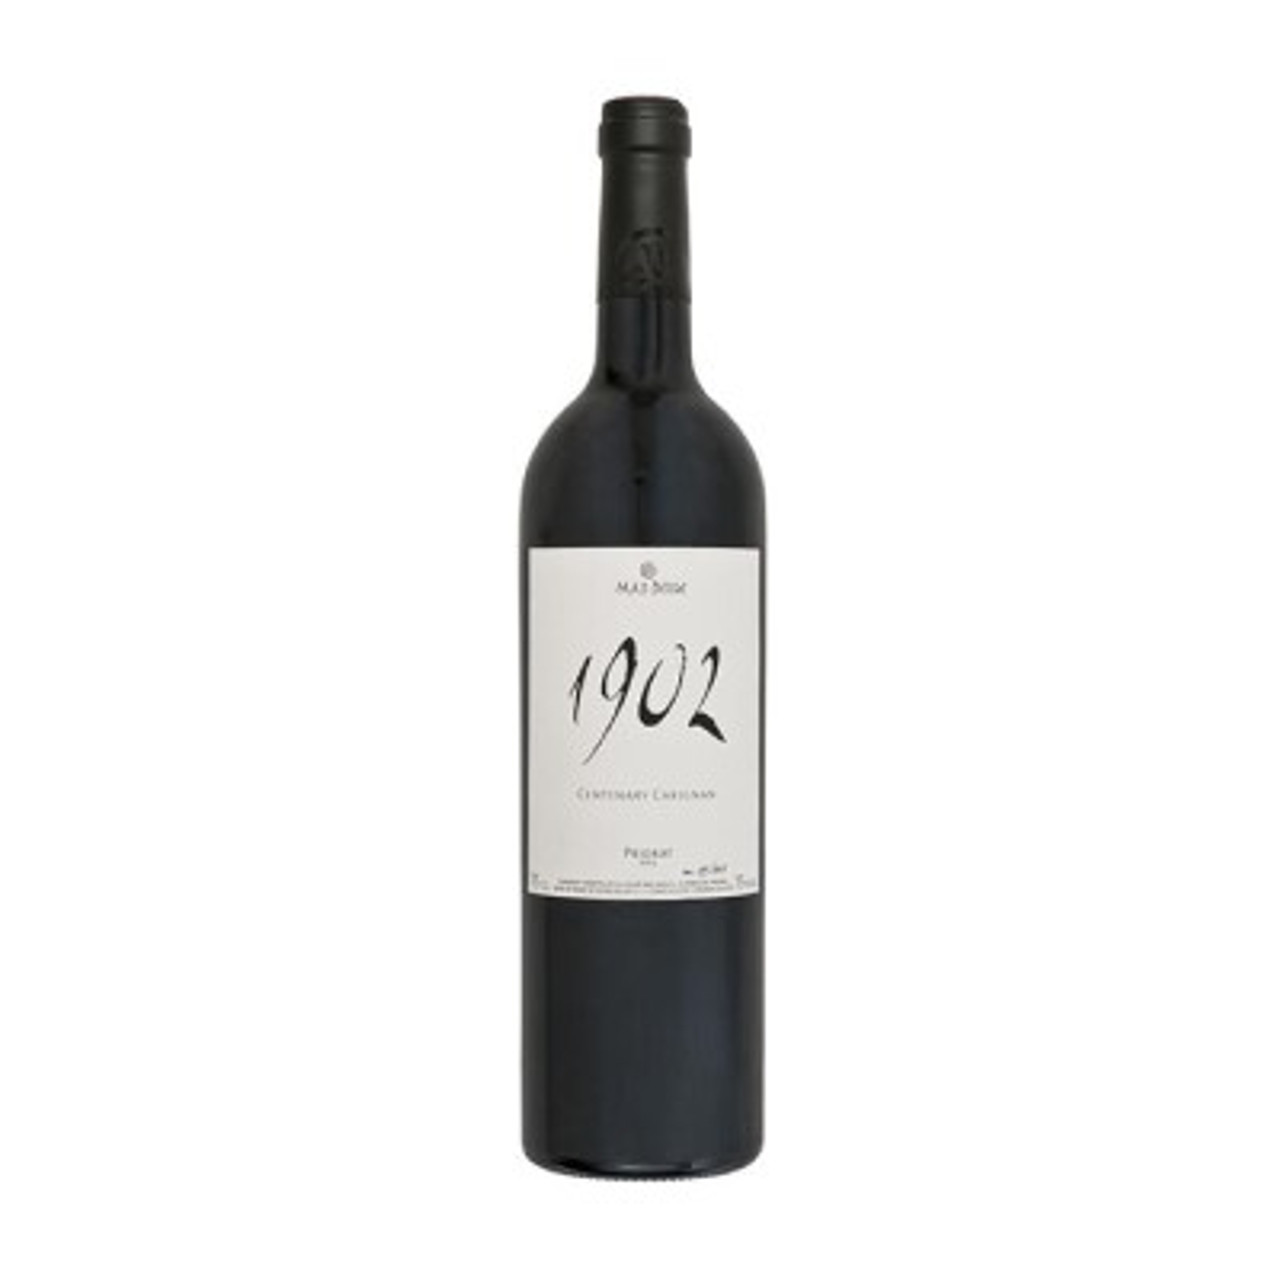 One of the best wines from Spain